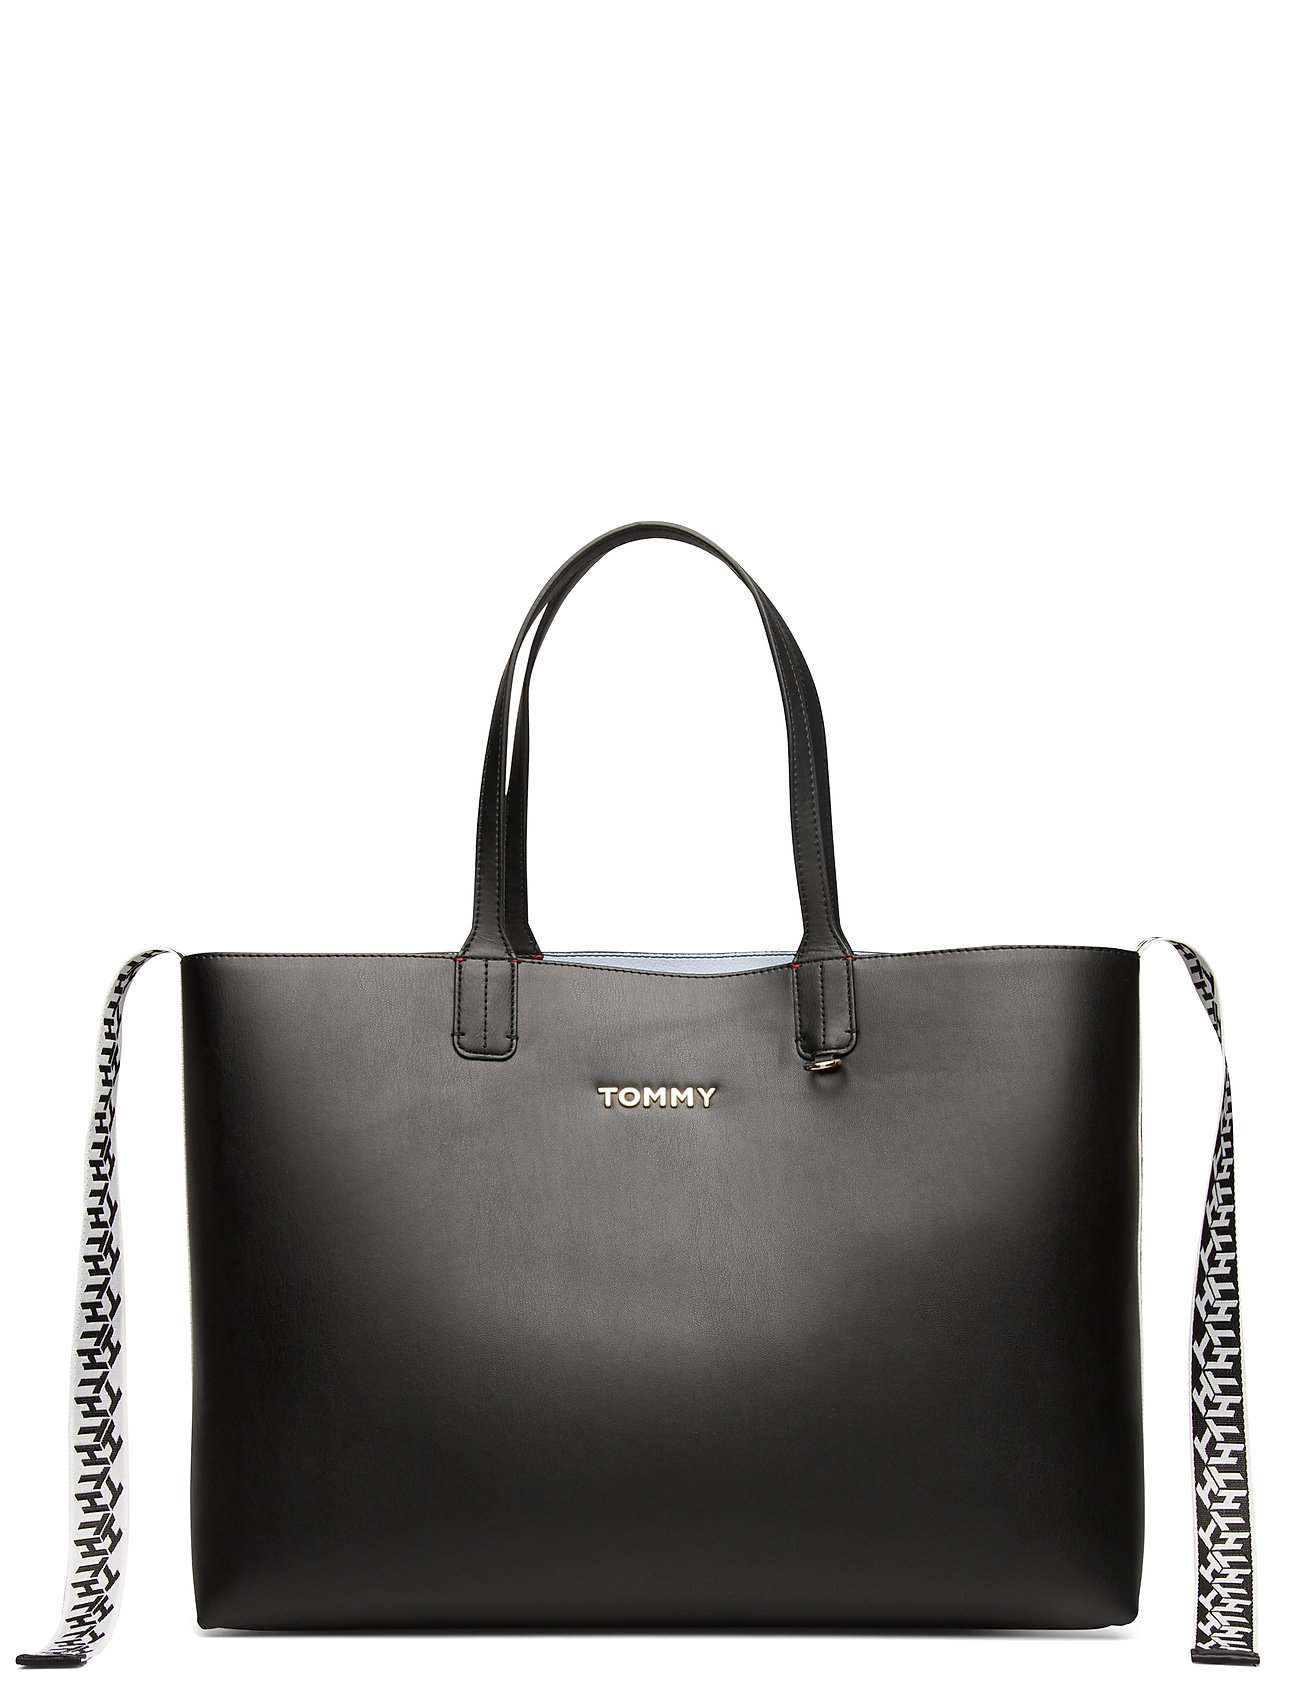 Tommy Hilfiger ICONIC TOMMY TOTE - BLACK